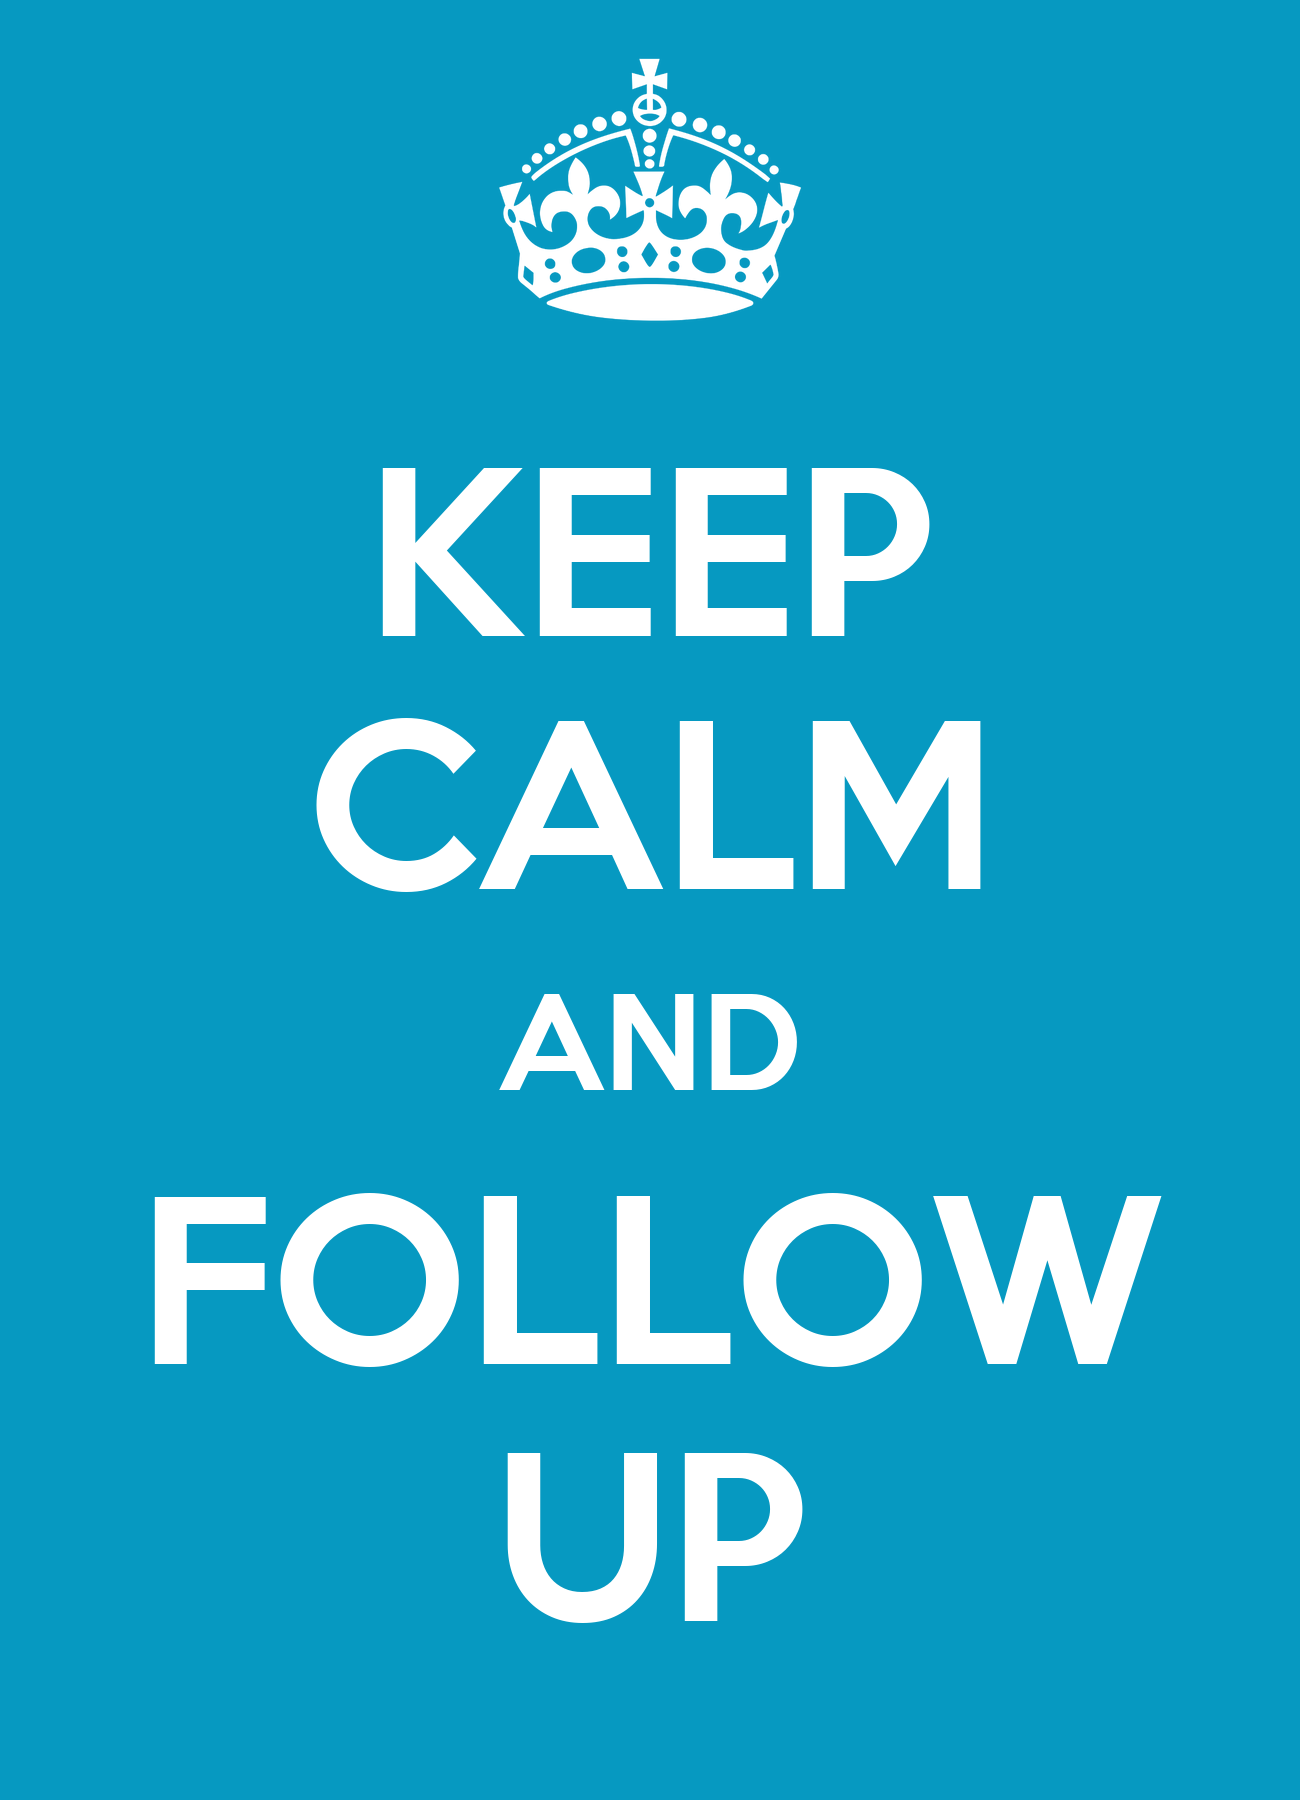 KEEP CALM AND FOLLOW UP - KEEP CALM AND CARRY ON Image ...